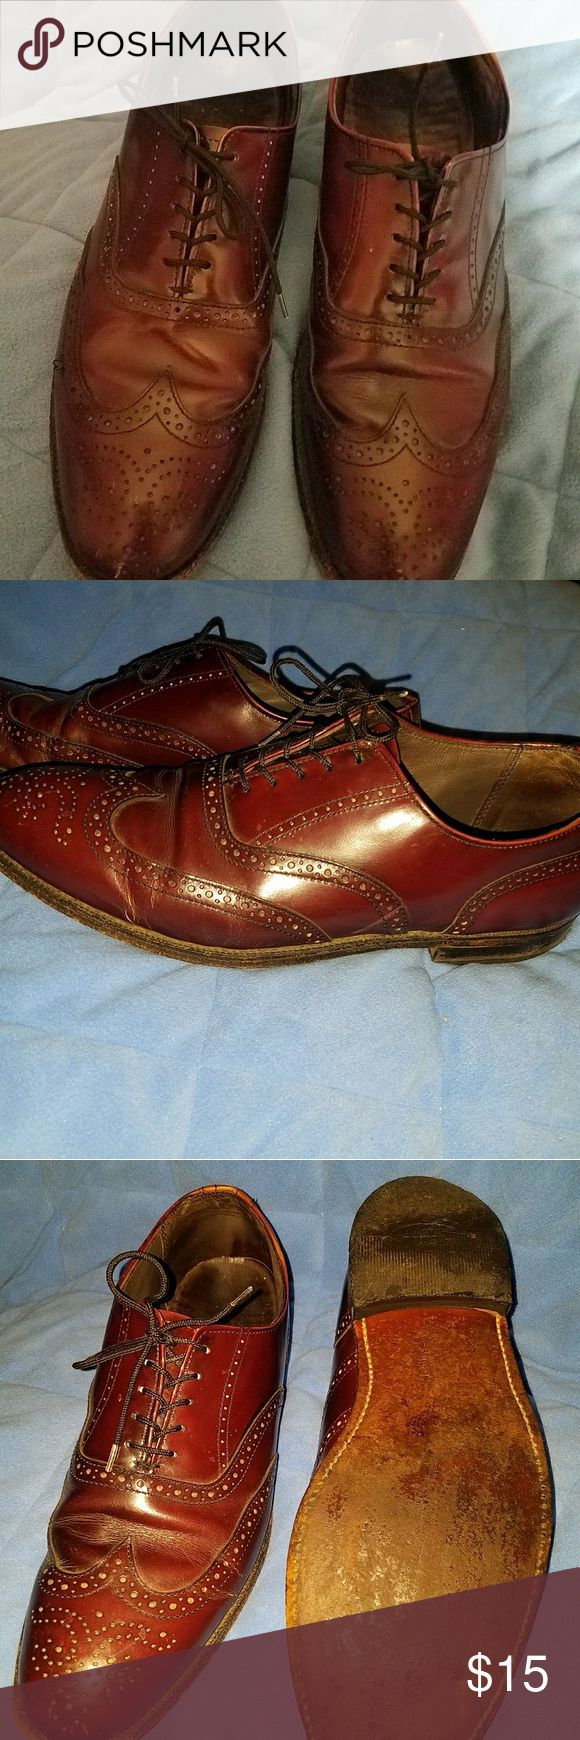 Vintage Men's shoes Dexter's Dexter vintage shoes for men size 11 medium. Reddish brown wingtip shoes in excellent condition have been Gently Loved in used but they have a lot more miles of walking to be done in them. Dexter Shoes Oxfords & Derbys